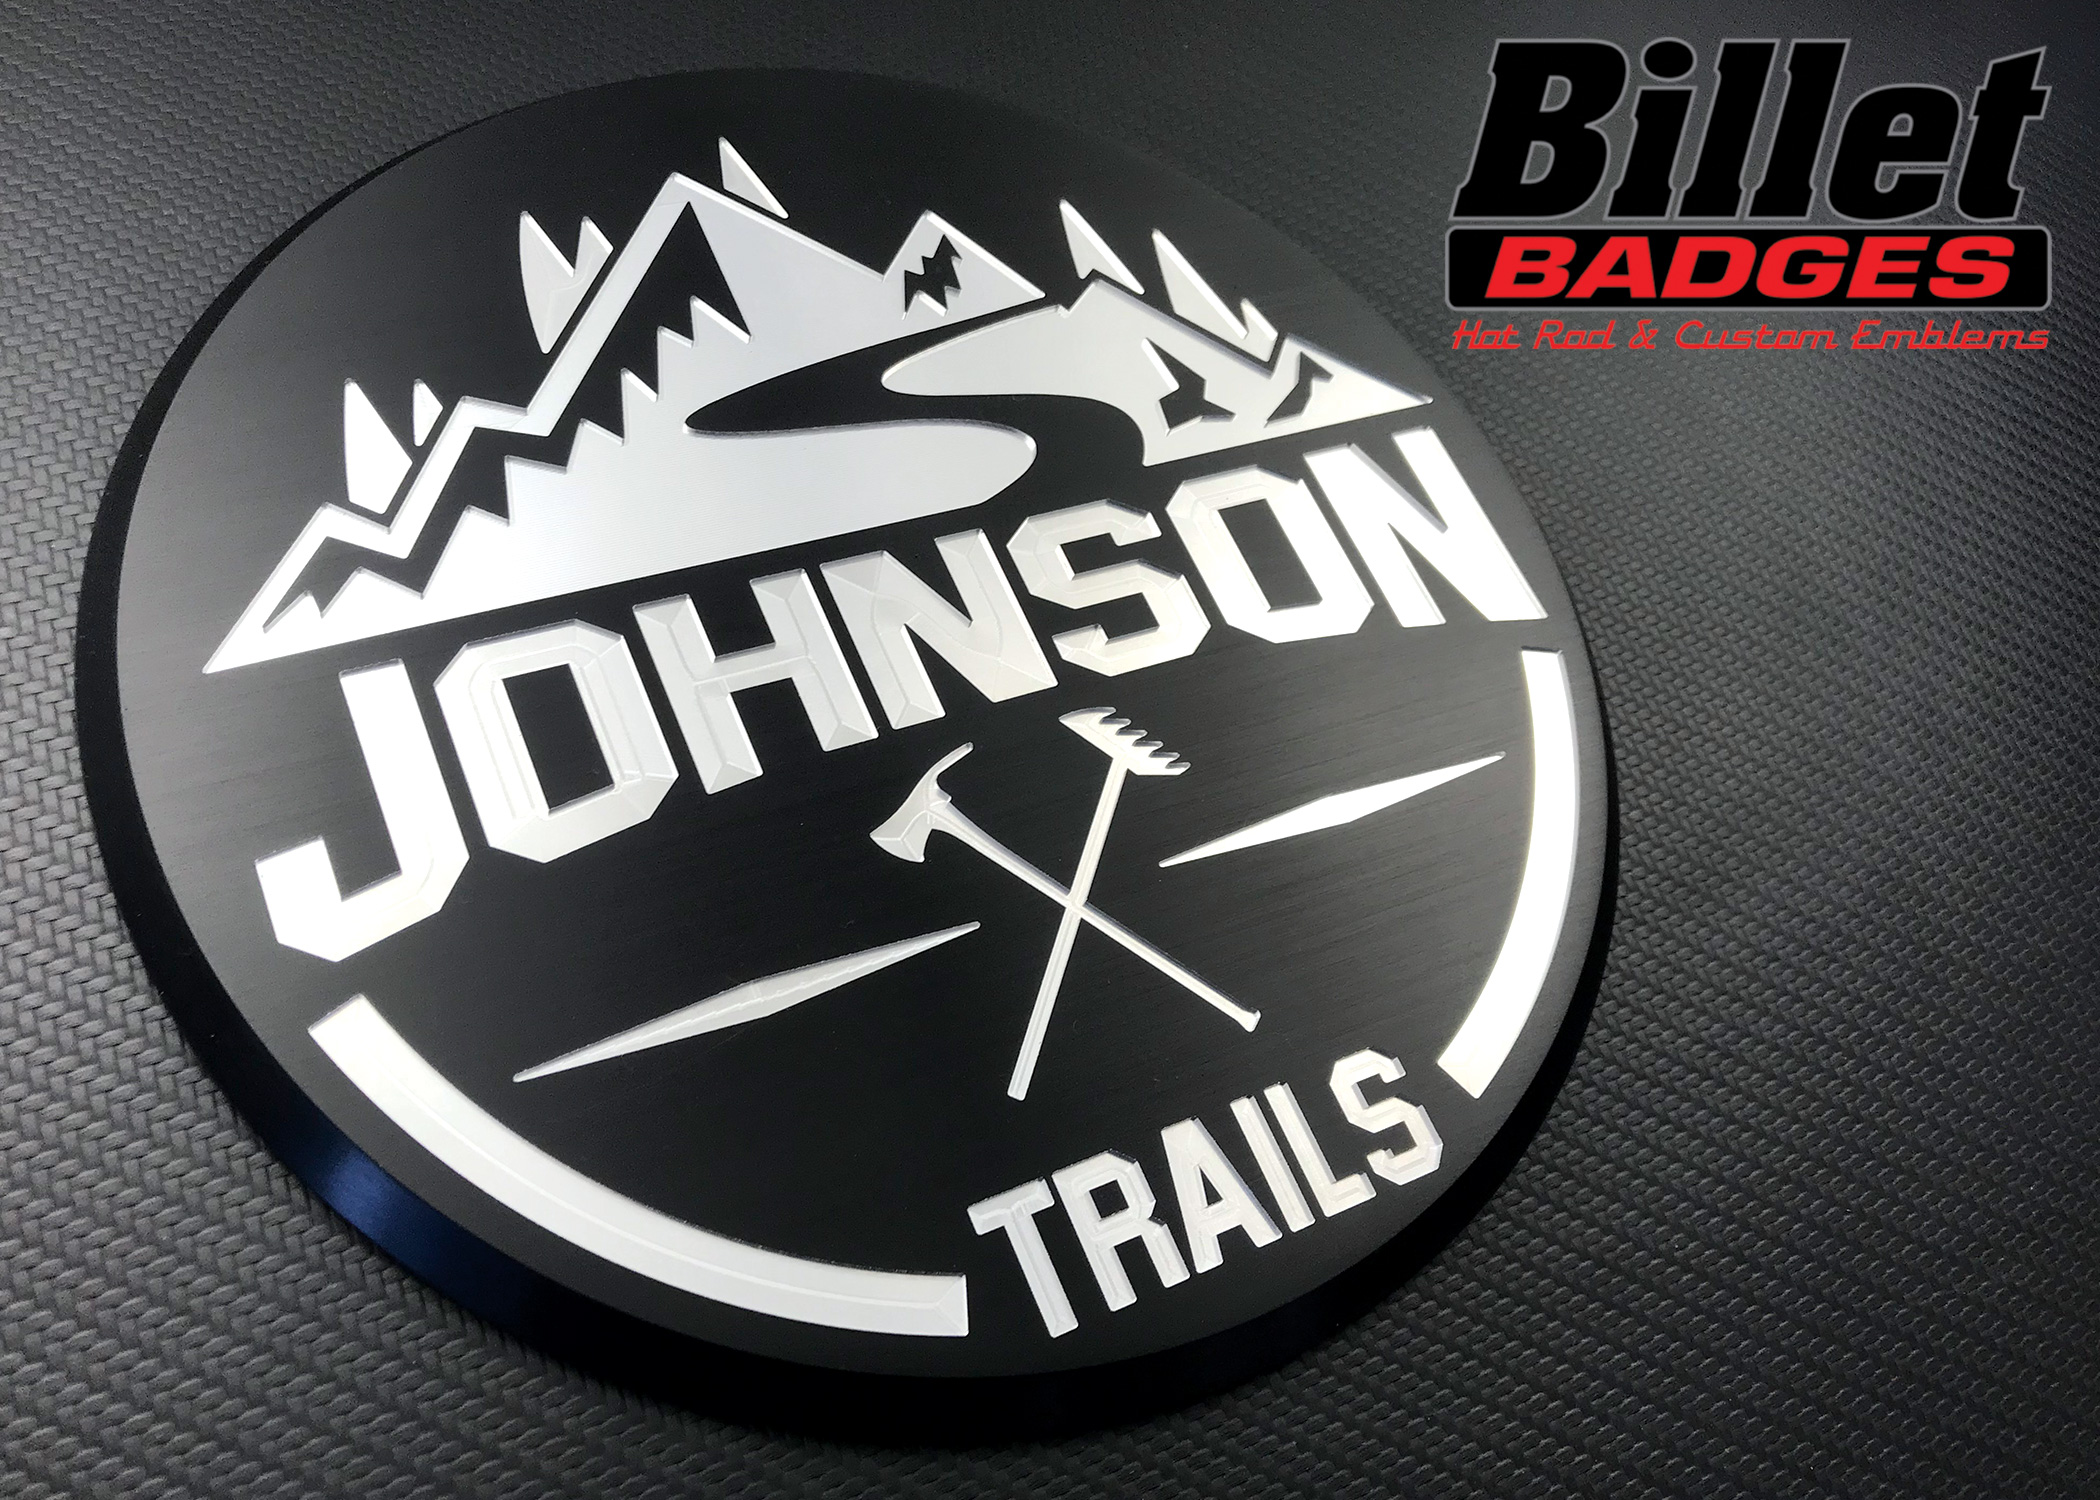 johnson_trails_medallion.jpg